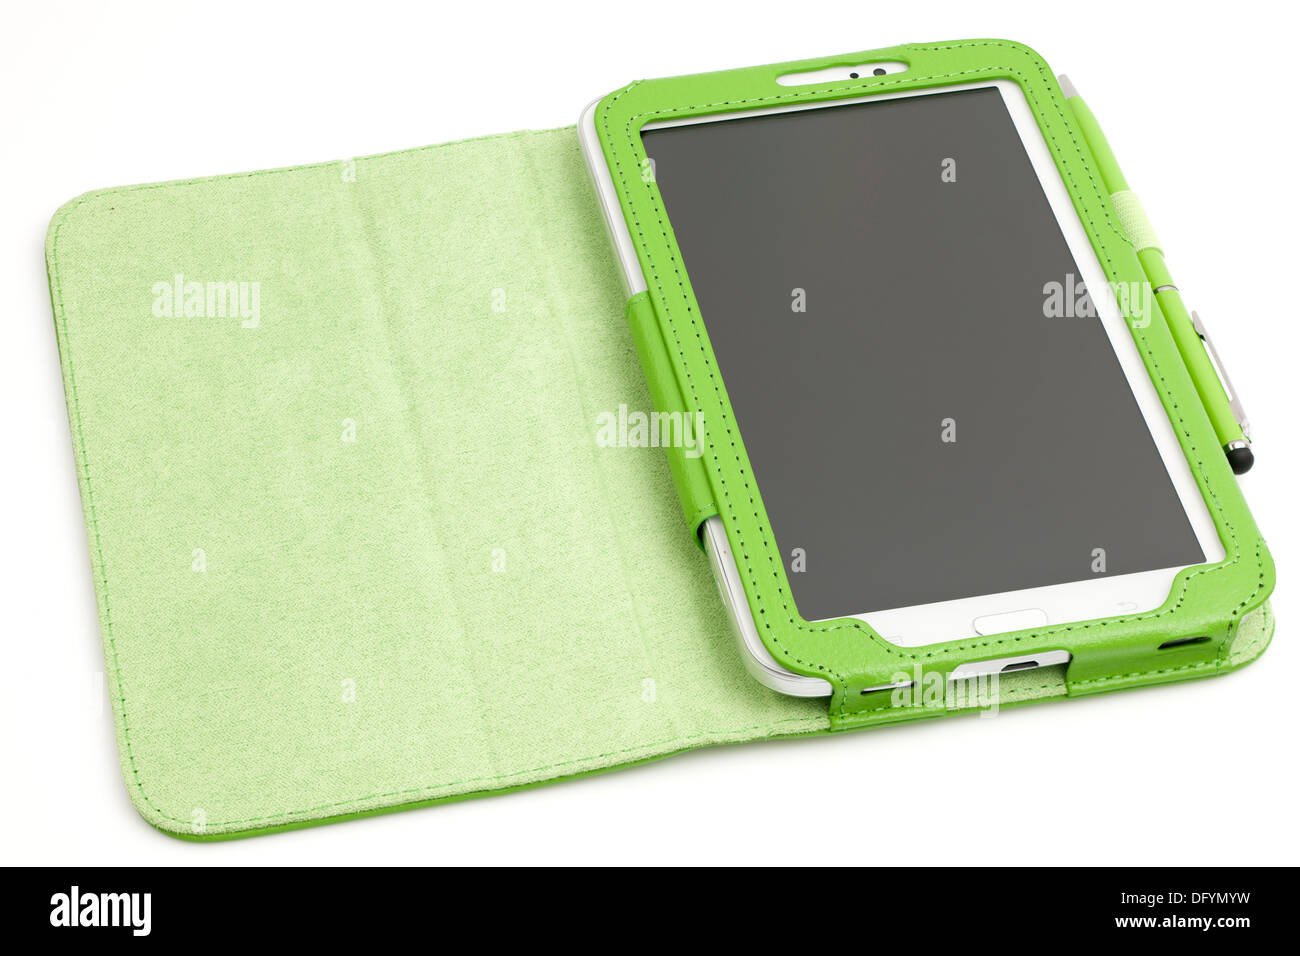 Samsung Galaxy 7 inch Tab 3 tablet with protective case and pen - Stock Image